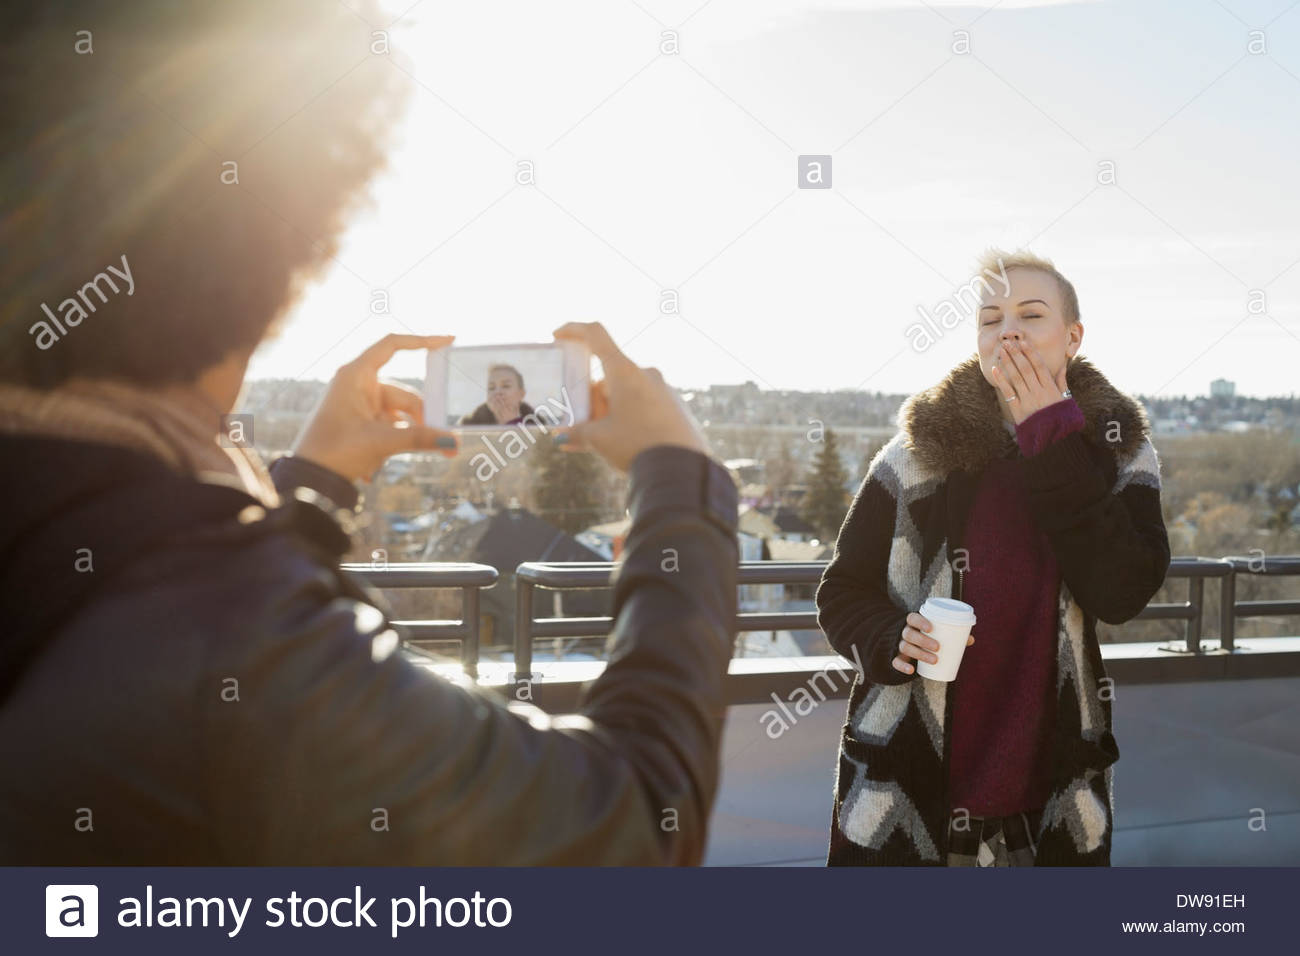 Woman being photographed by friend on patio - Stock Image